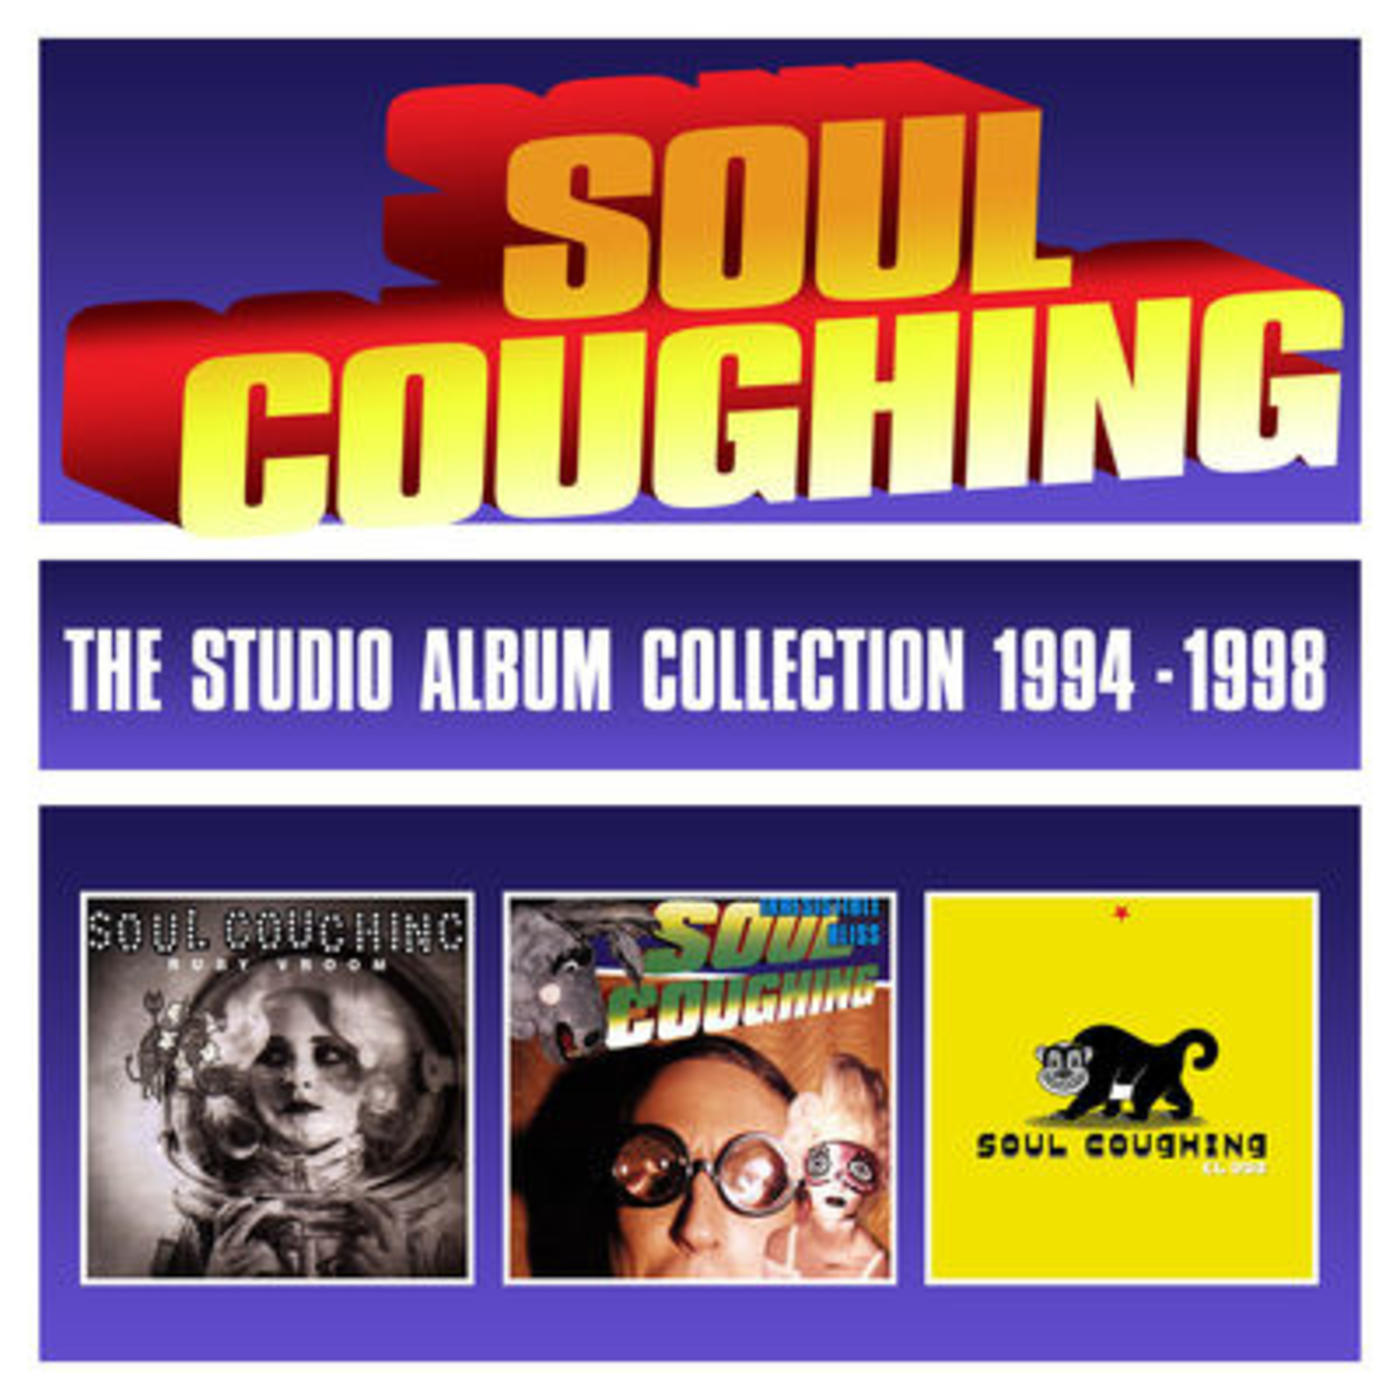 The Studio Album Collection 1994-1998